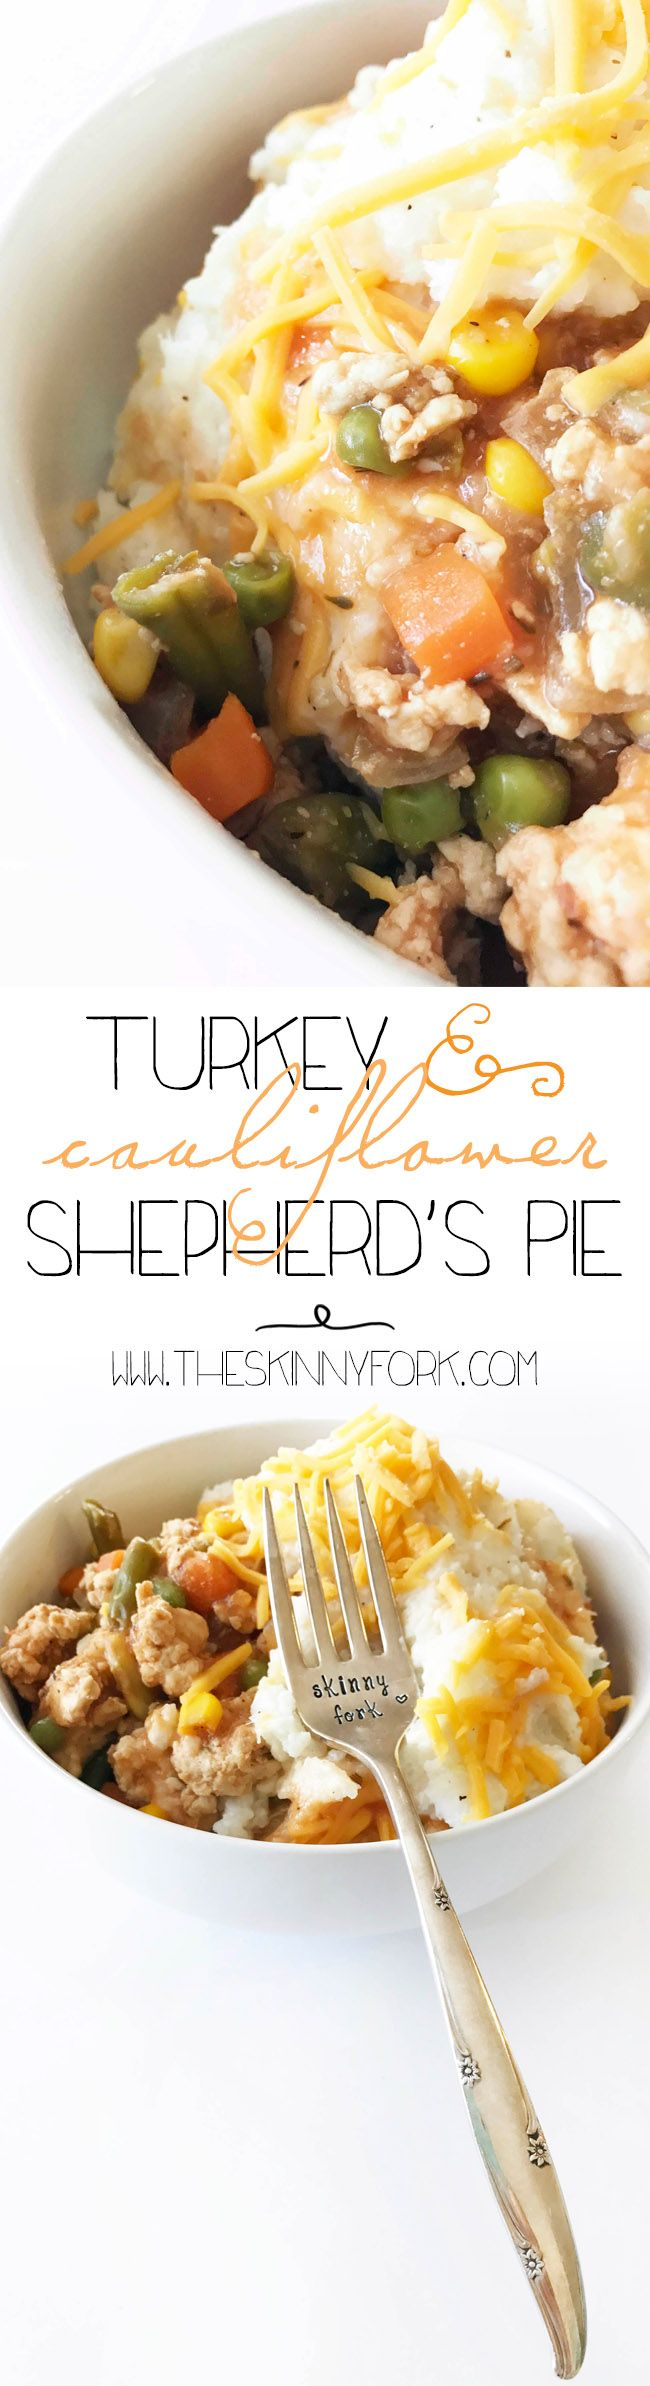 #Ad Check out this smart swap Turkey & Cauliflower Shepherd's Pie! It's Inspired By You with a cauliflower mash, plenty of veggies and lean ground turkey making the perfect SmartMade style meal option. It's easy to make, tasty, clean, lean and guilt-free! Repin for a chance to see a similar @smartmade0201 meal in your freezer aisle @AOL_Lifestyle TheSkinnyFork.com | Skinny & Healthy Recipes